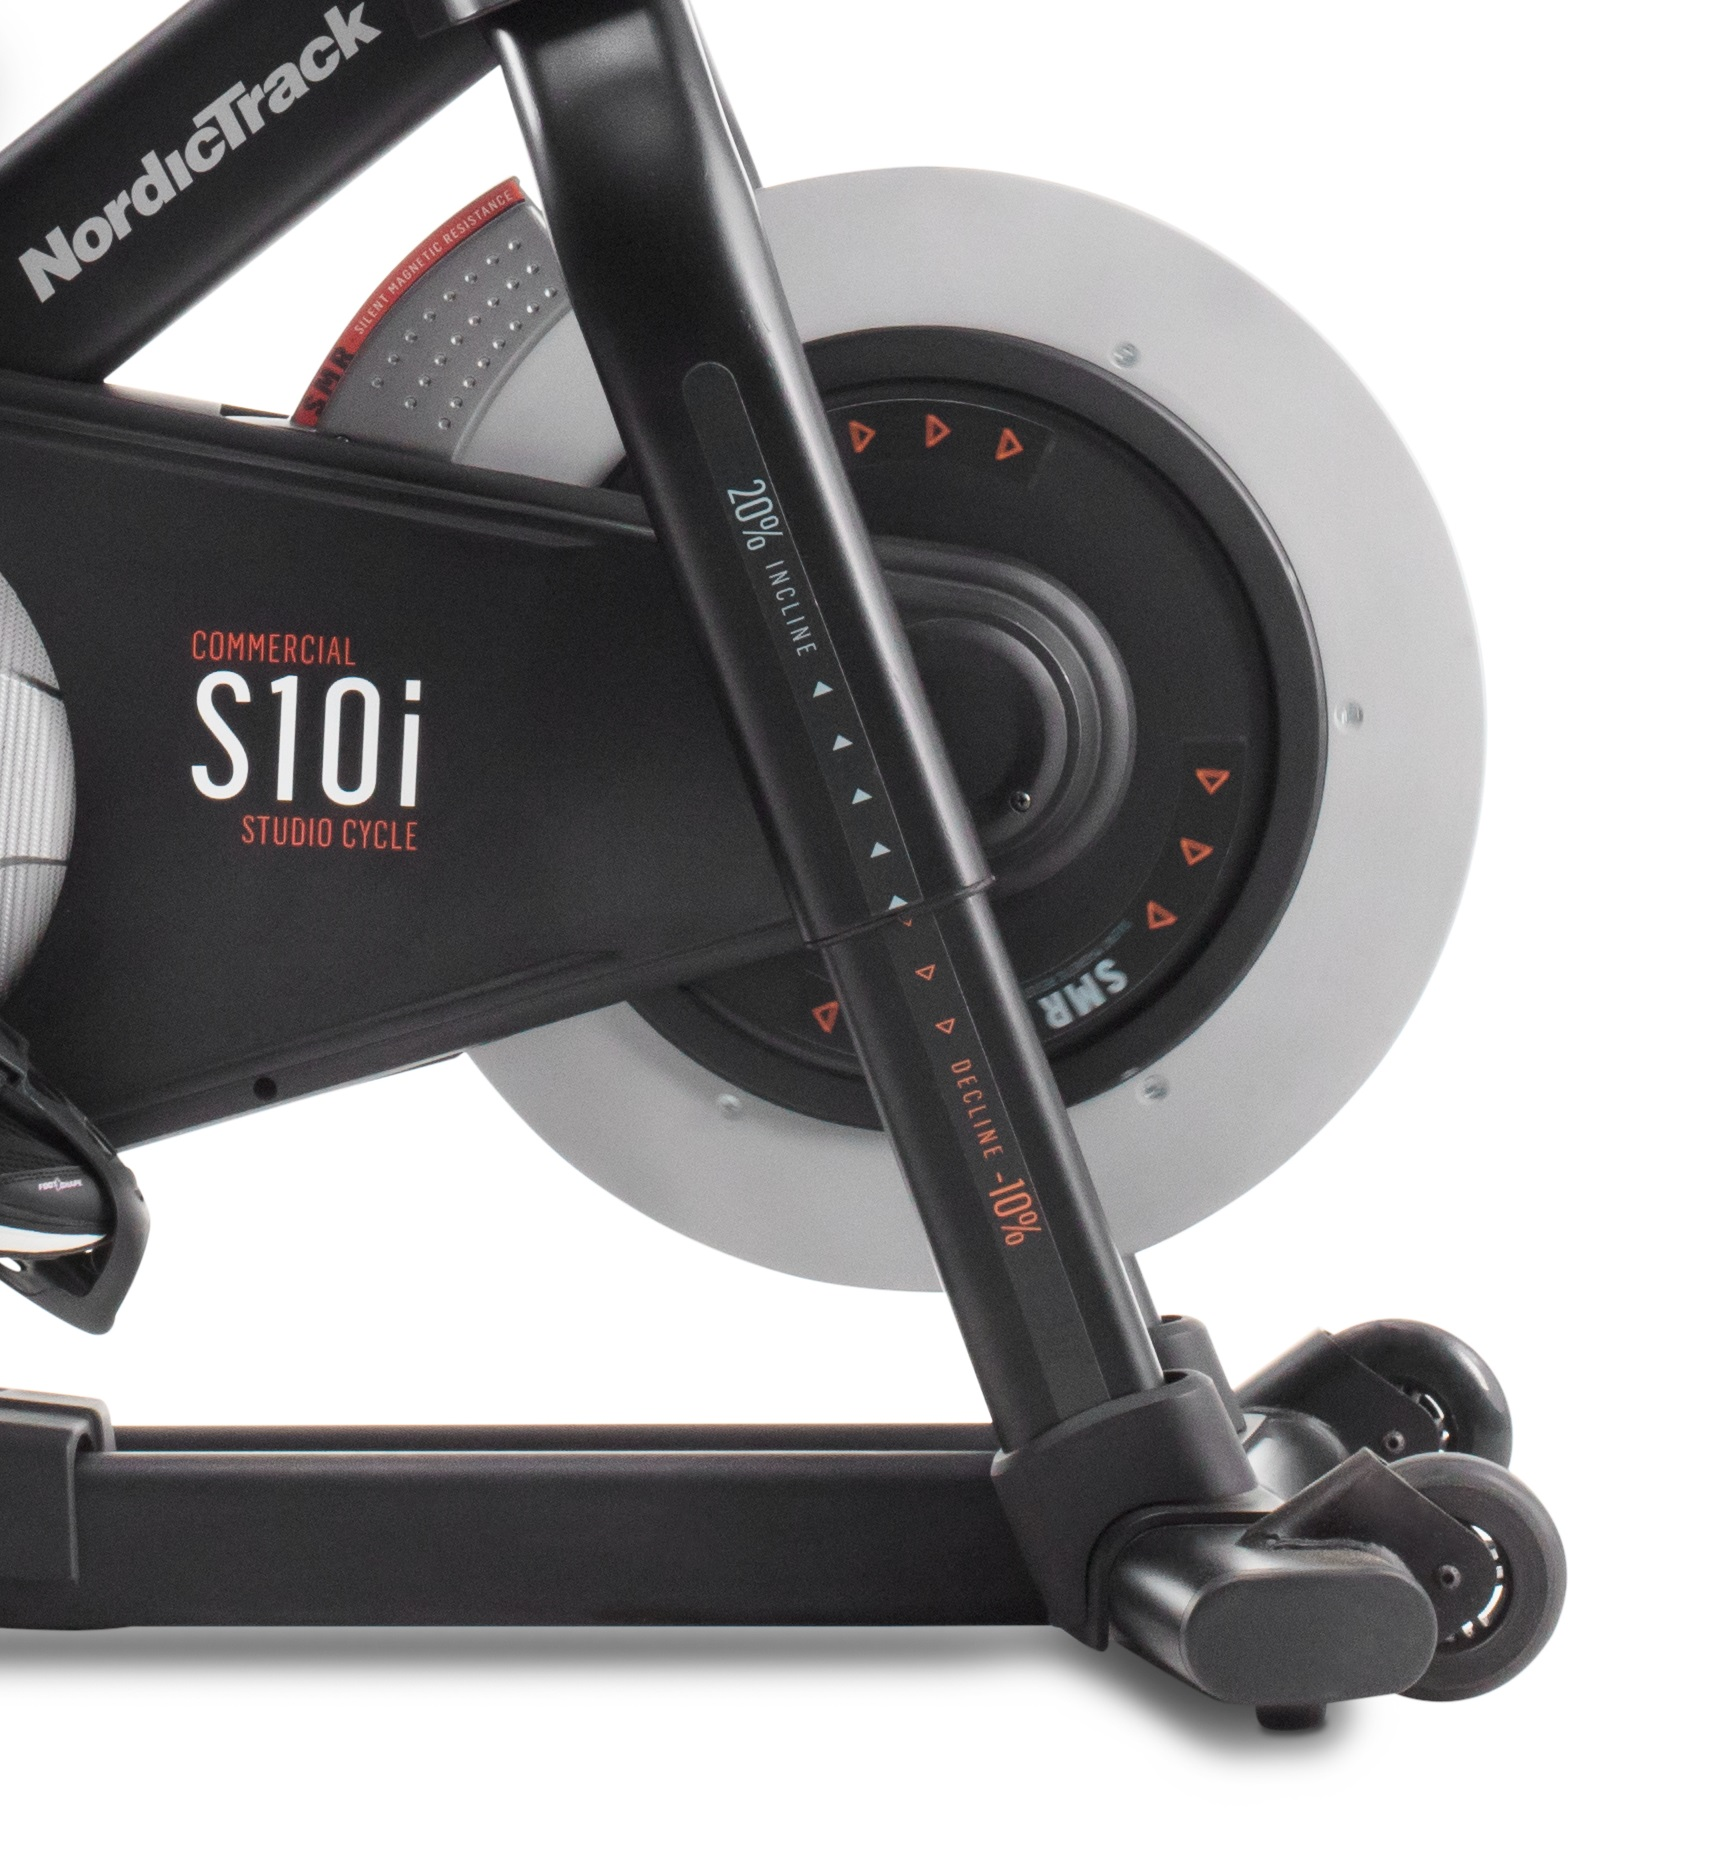 Nordictrack commercial S10i Studio detail